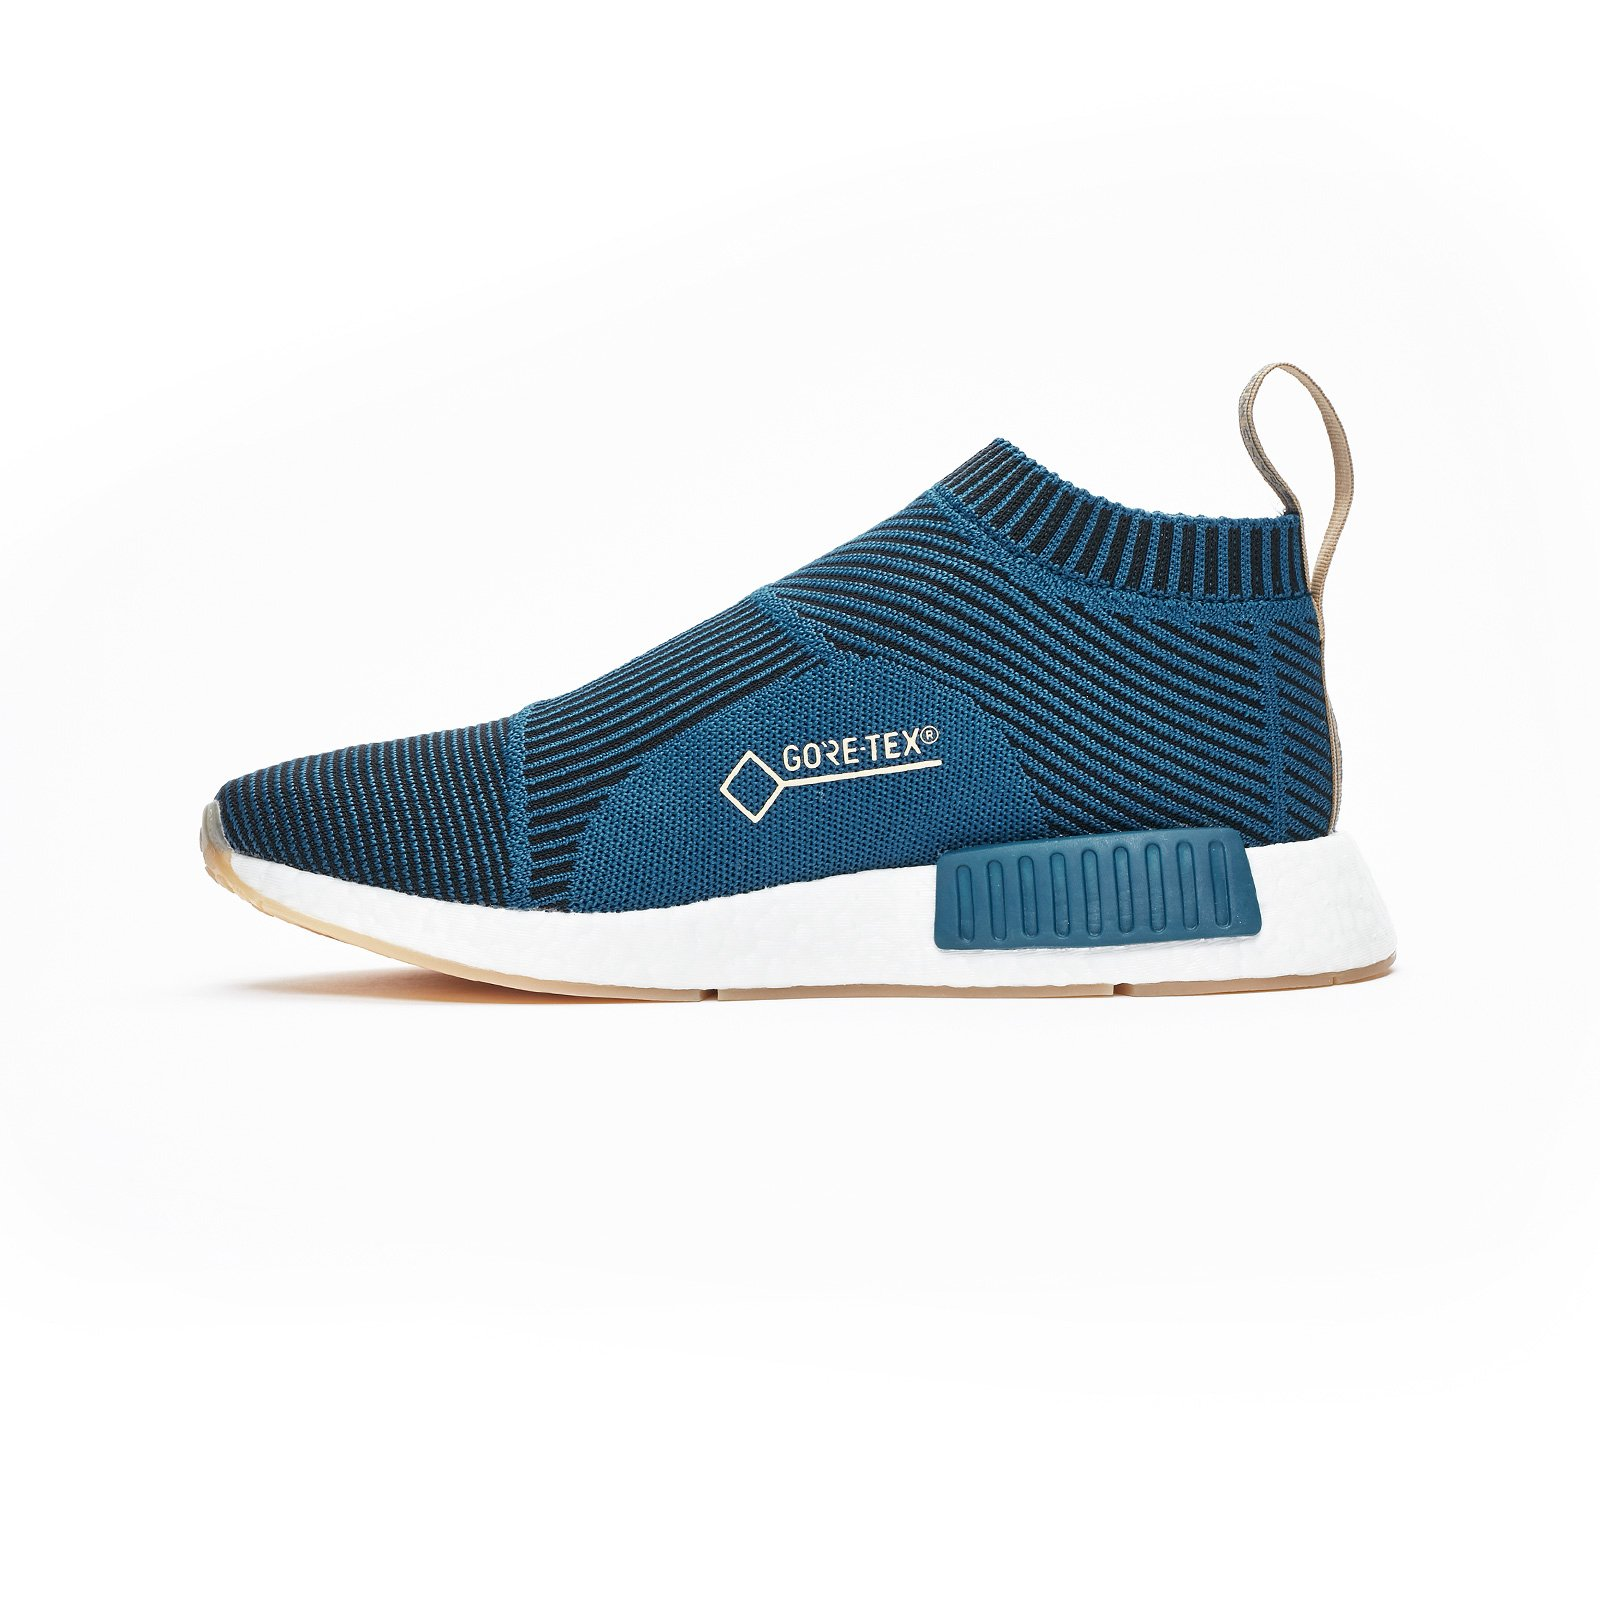 on sale 7eb87 ad984 adidas NMD CS1 GORE-TEX Primeknit - SNS Exclusive - Aq0363 ...